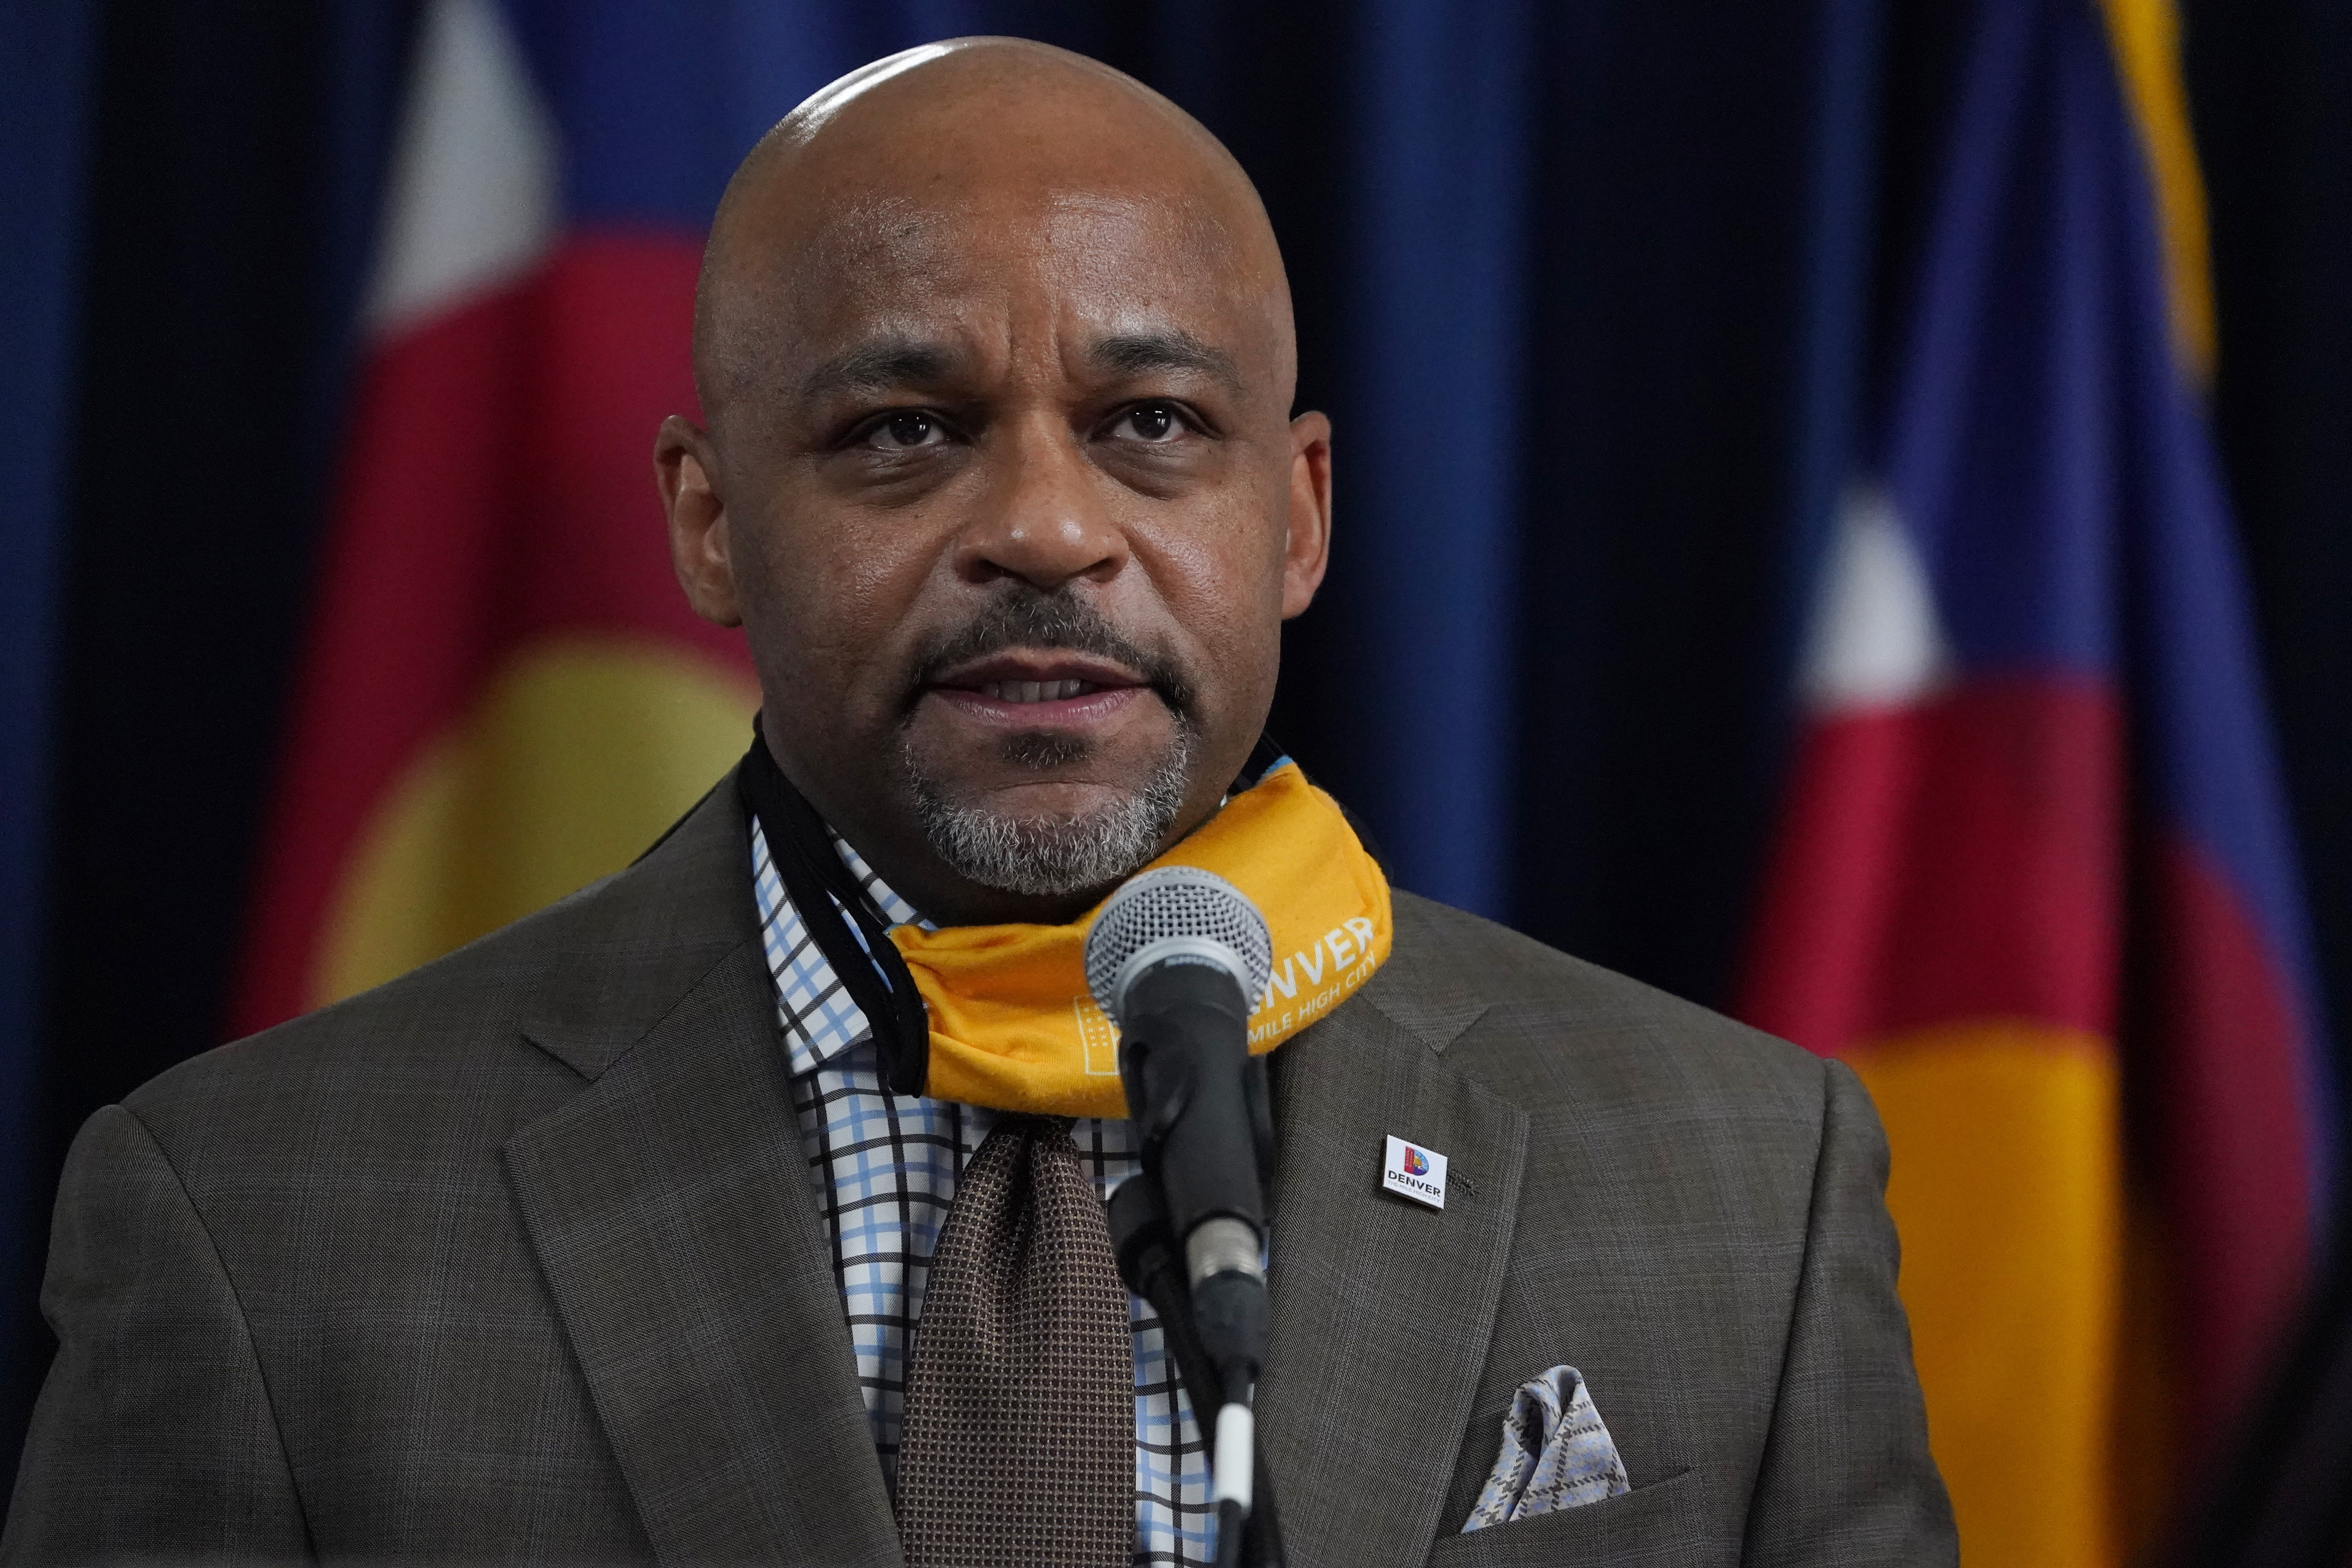 Denver Mayor Michael Hancock Urged Residents Not To Travel For Thanksgiving Just Before Flying To Mississippi The Washington Post